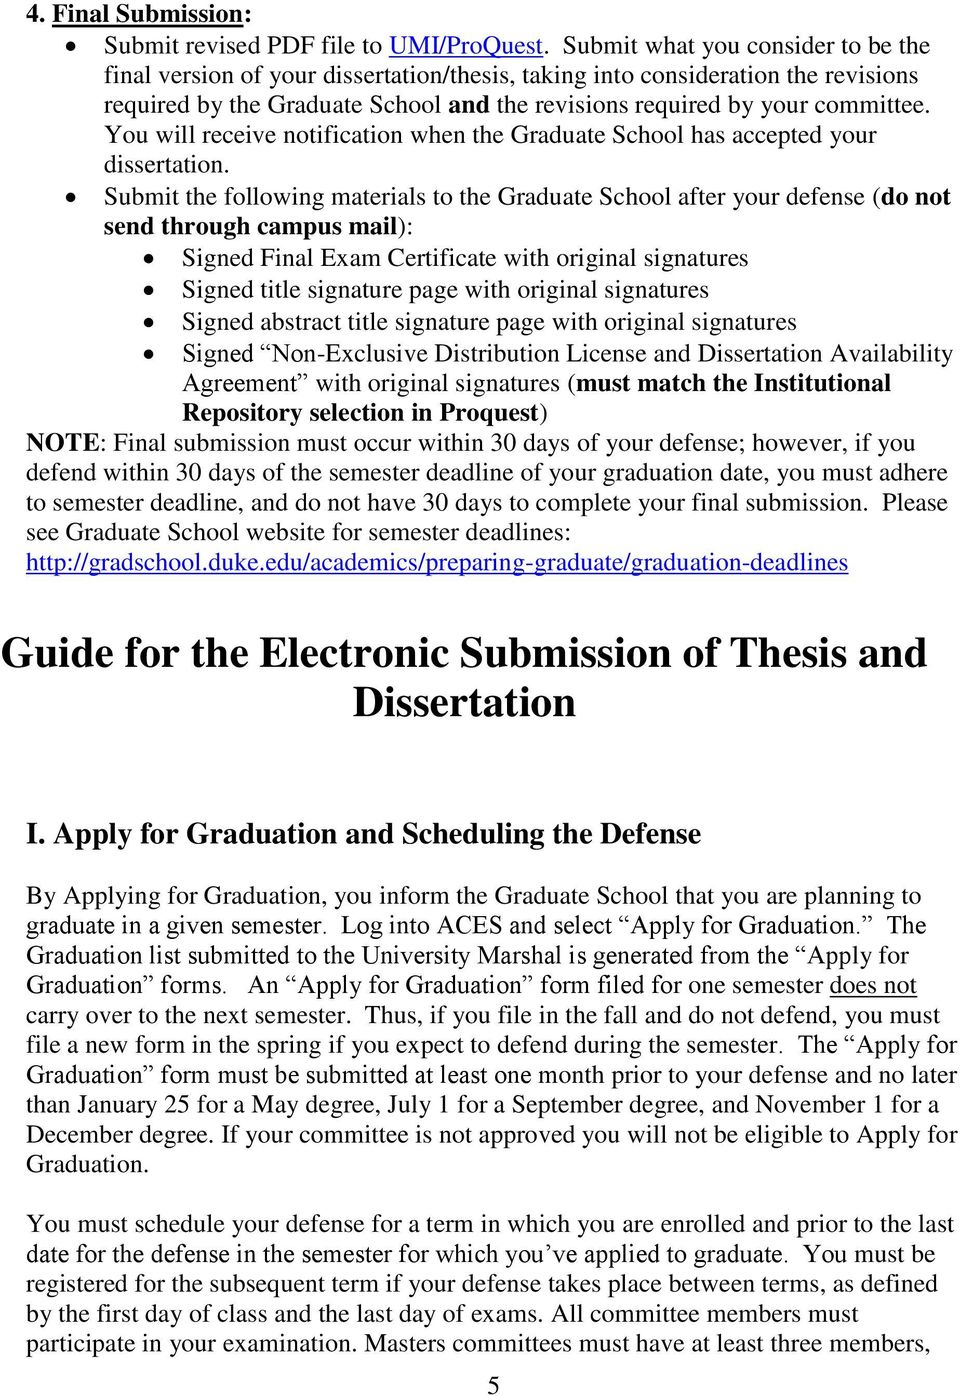 You will receive notification when the Graduate School has accepted your dissertation.